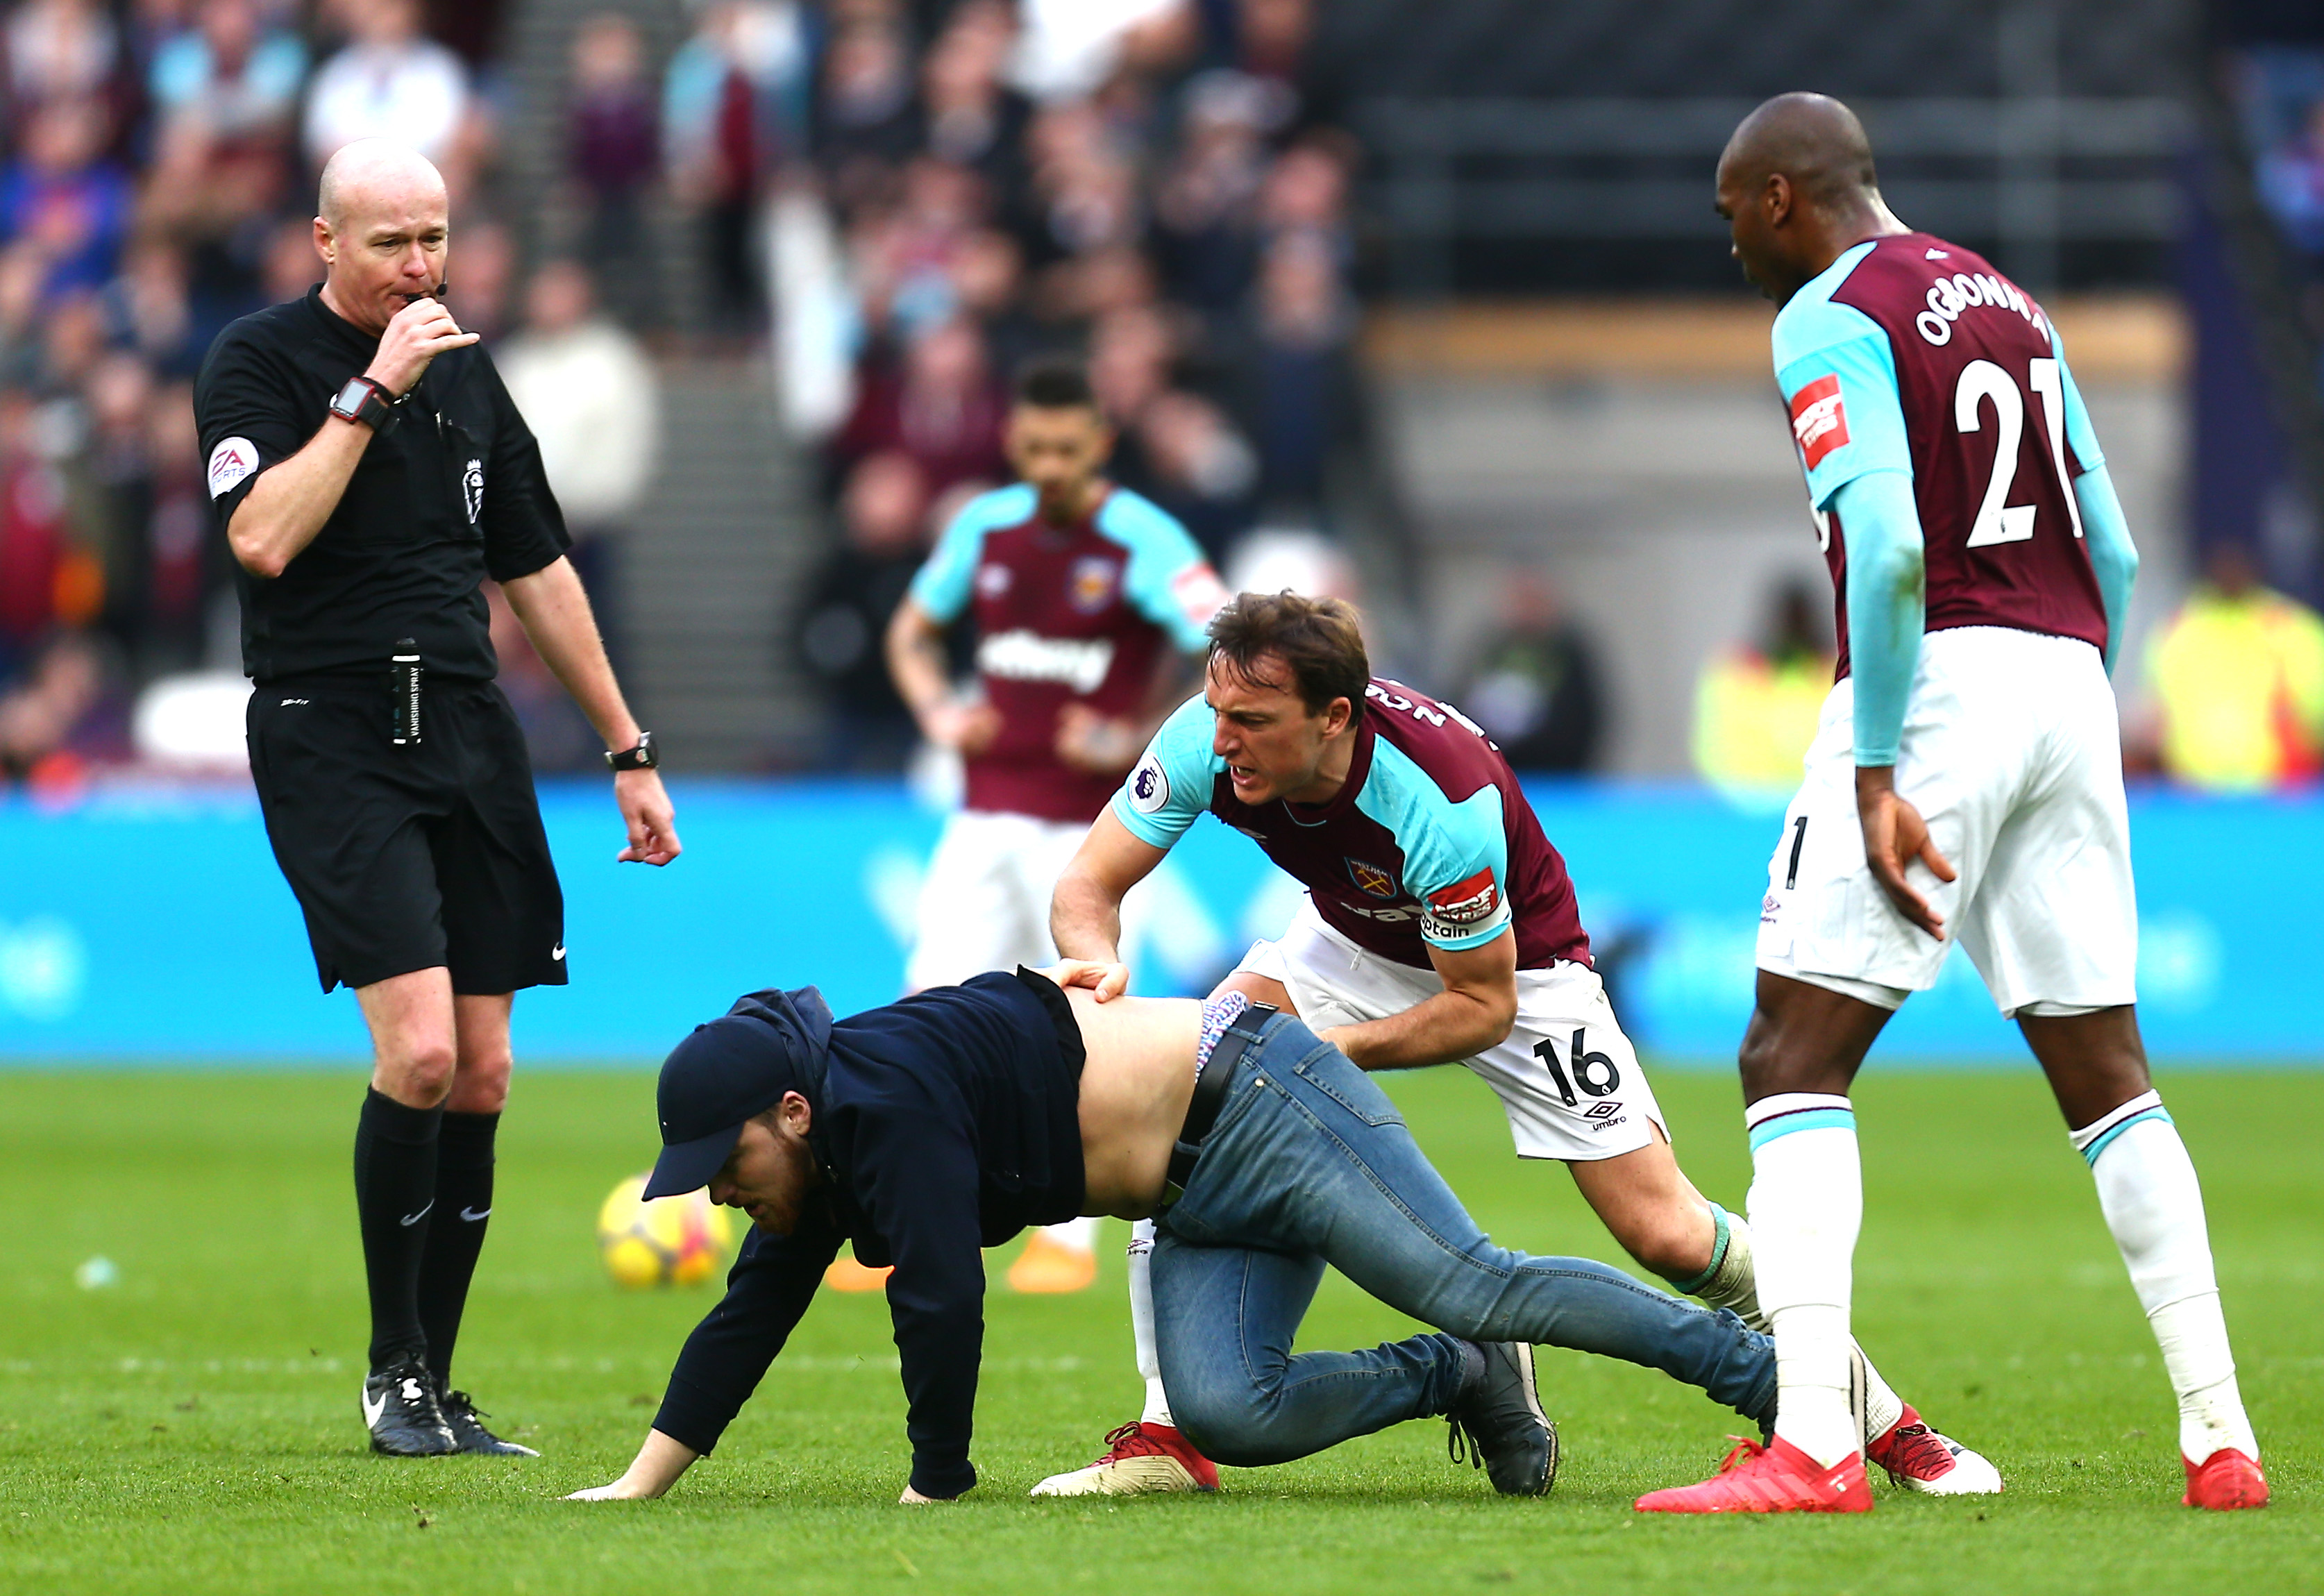 Ugly scenes as West Ham lose home match